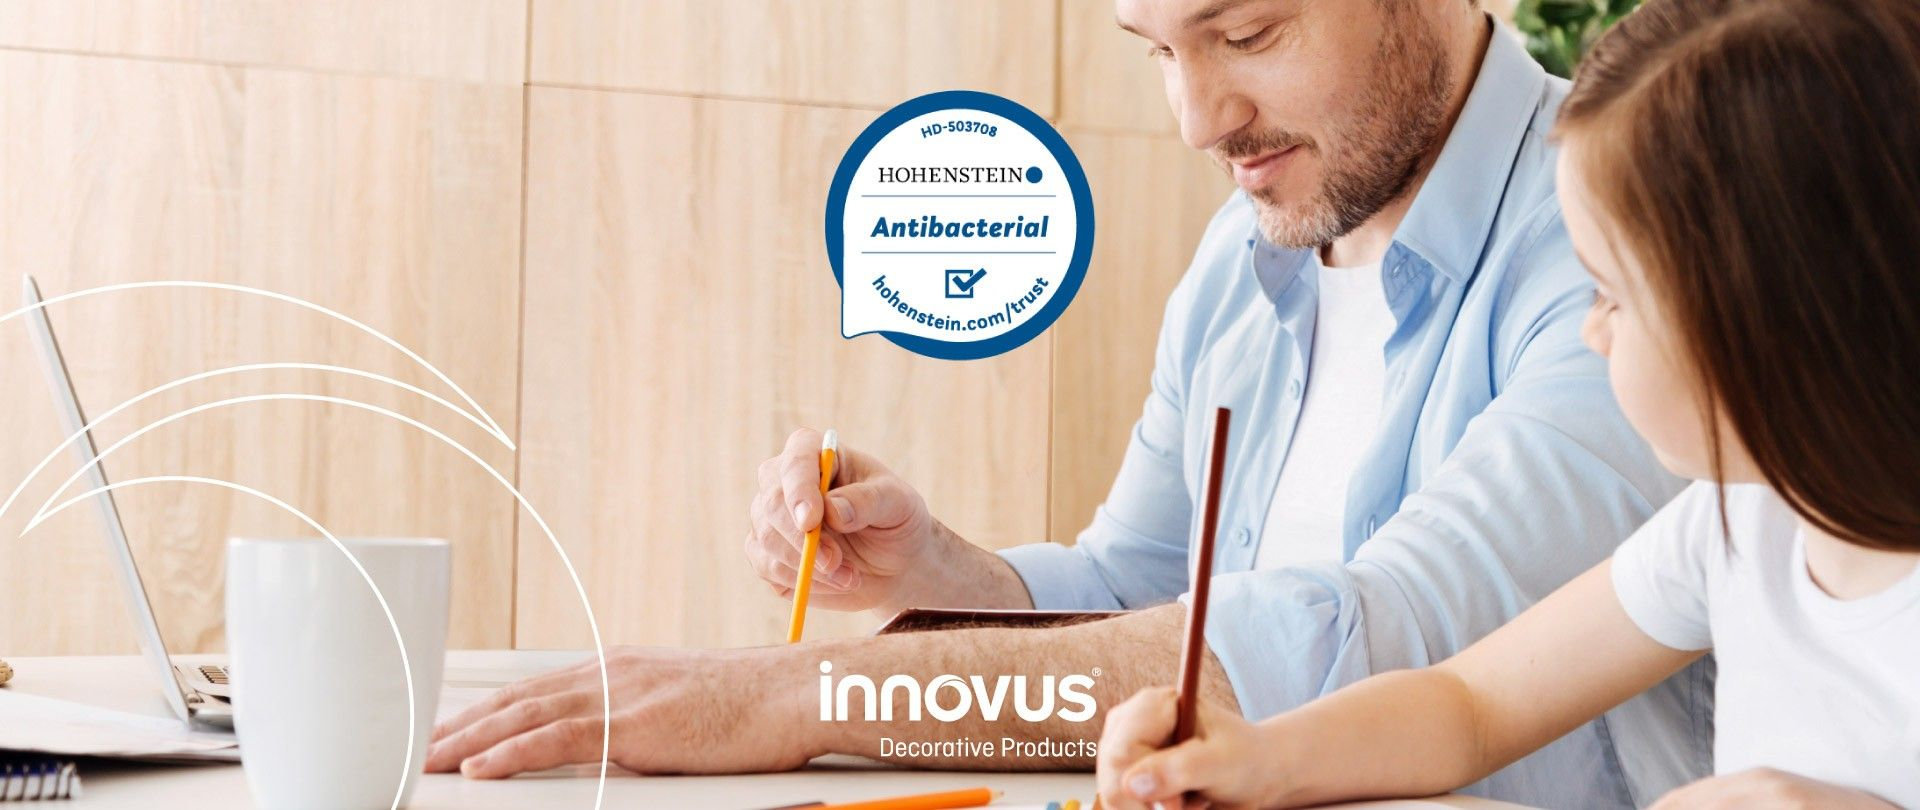 New Innovus Collection